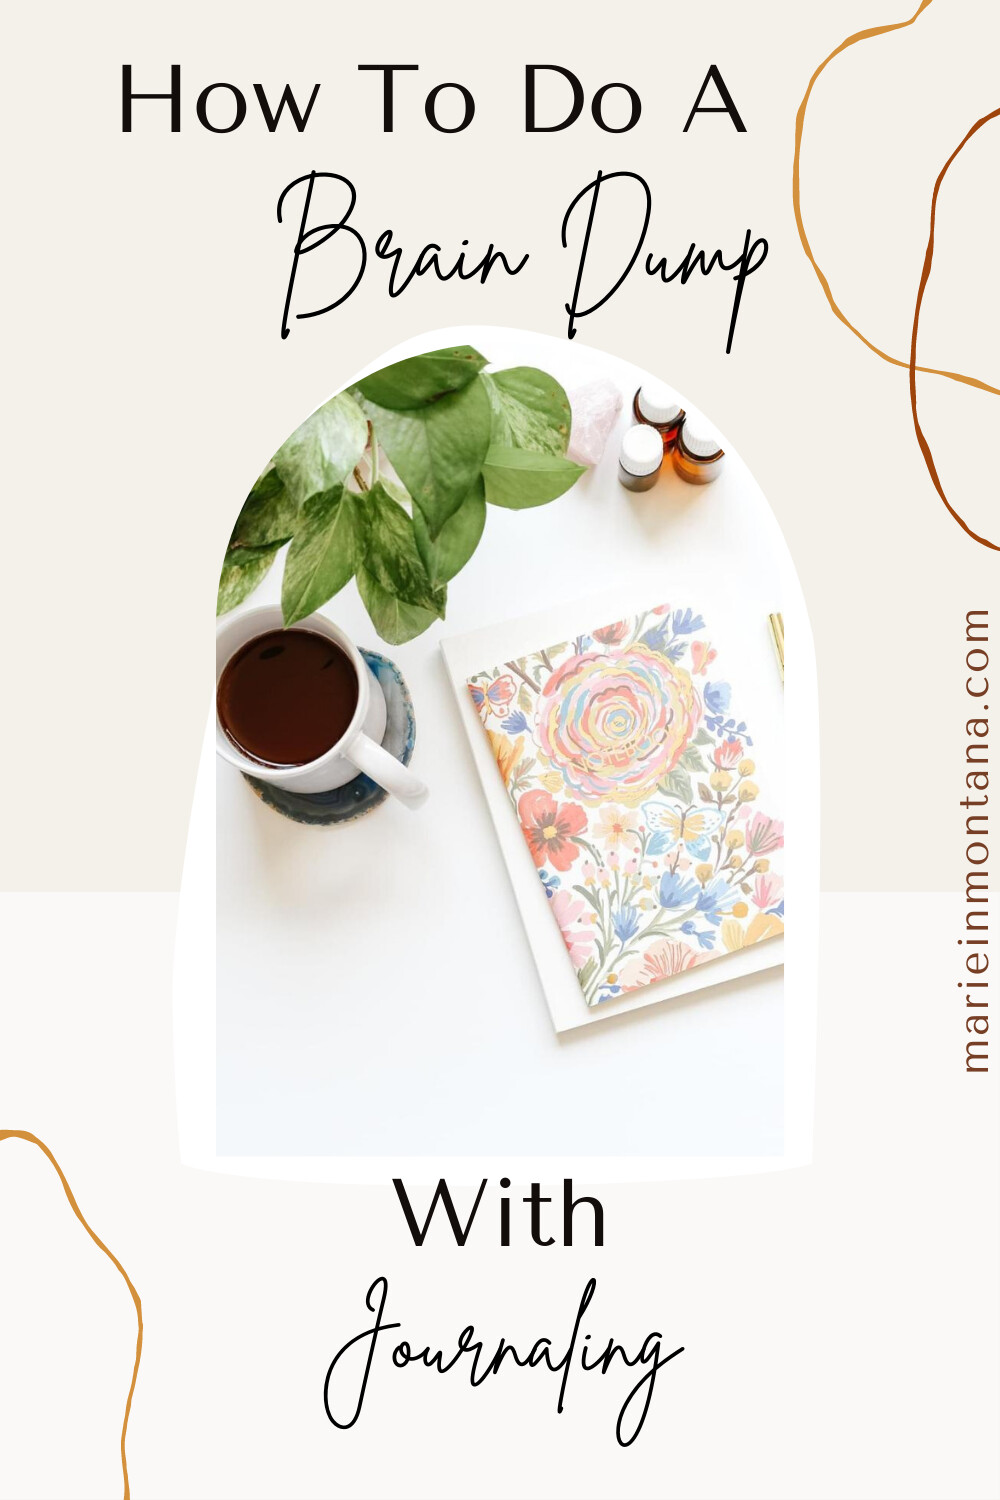 How To Do A Brain Dump With Journaling